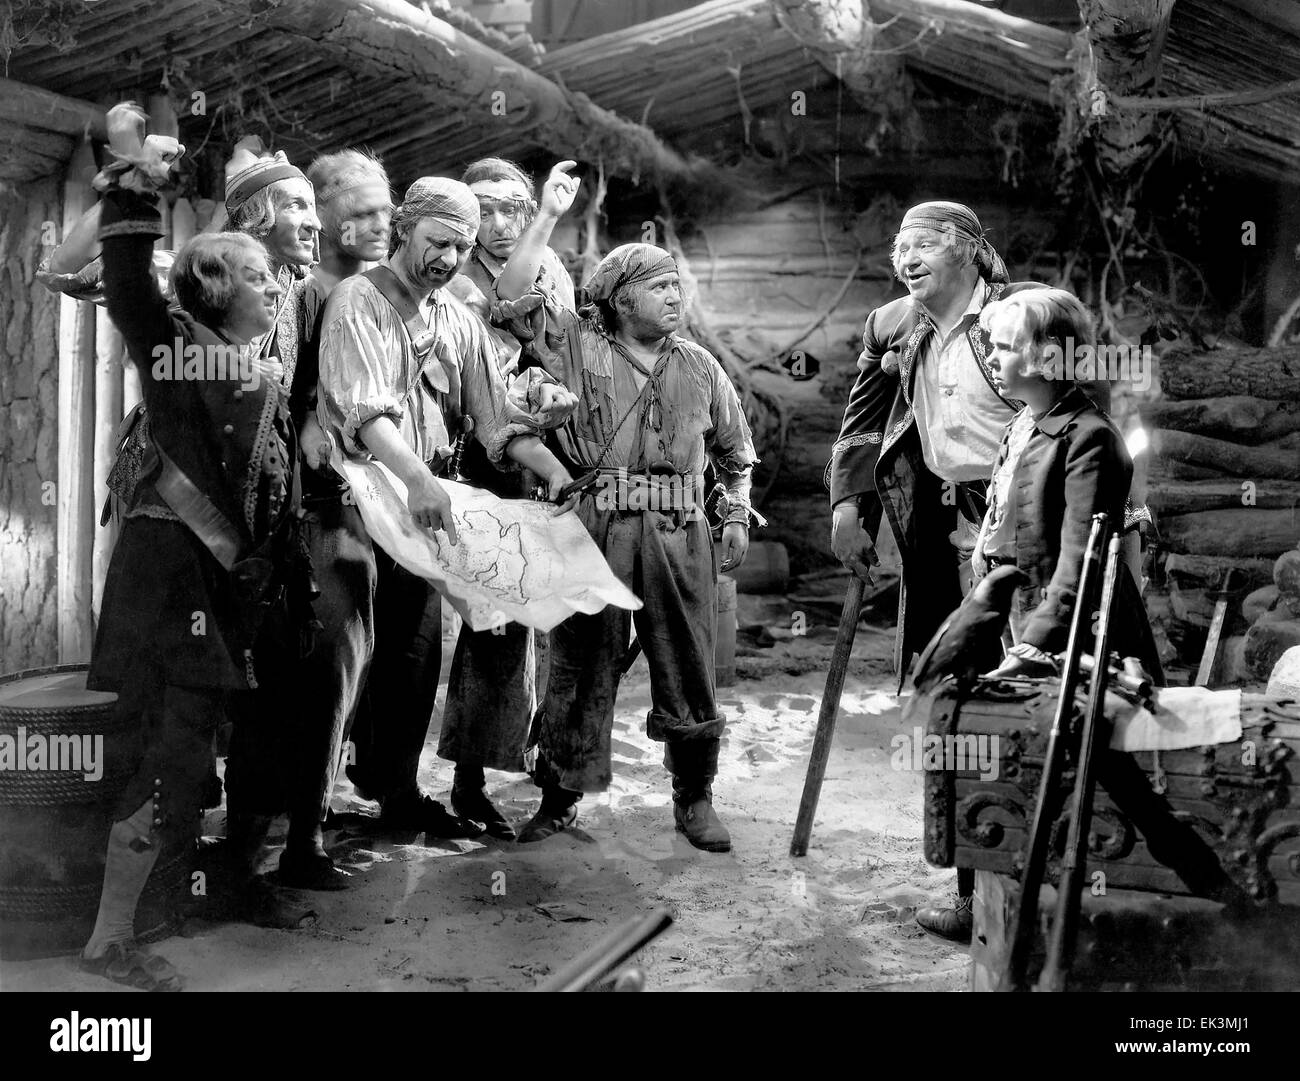 Wallace Beery, Jackie Cooper (right), on-set of the Film 'Treasure Island', 1934 - Stock Image